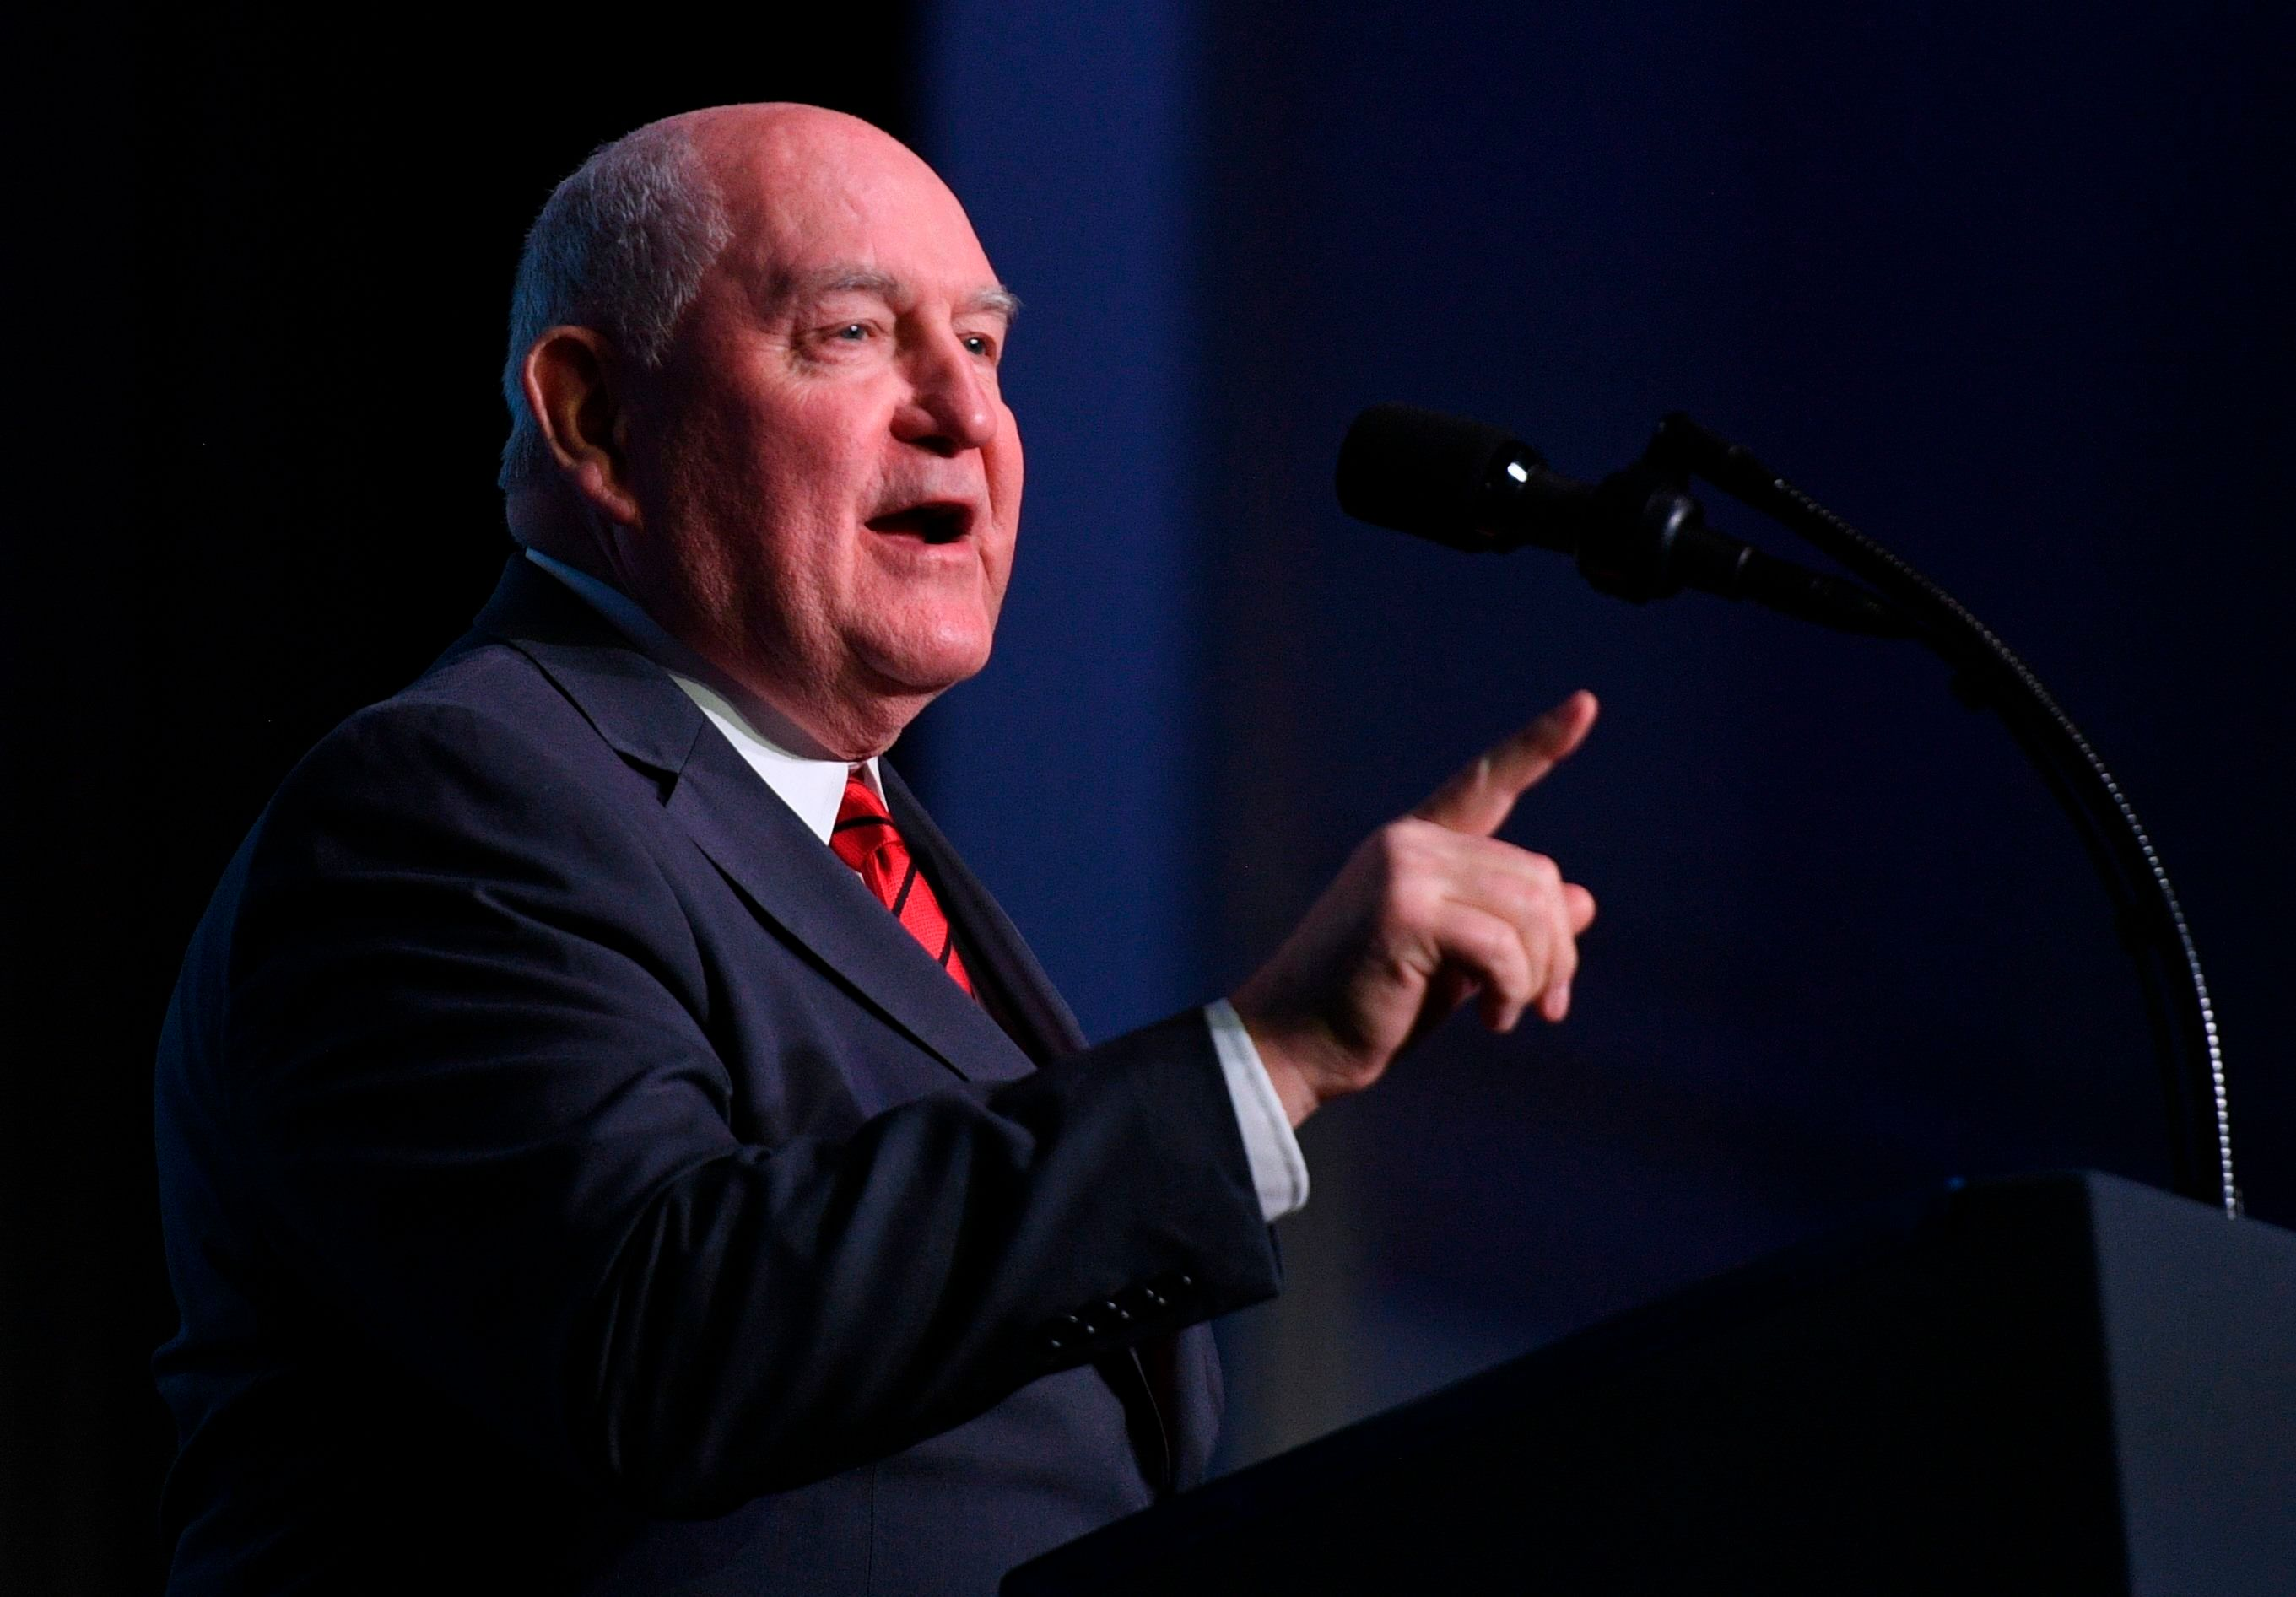 Sonny Perdue, United States Secretary of Agriculture,  speaks at the American Farm Bureau Federations 99th Annual Convention at Opryland in Nashville, Tennessee, on January 8, 2018.  / AFP PHOTO / JIM WATSON        (Photo credit should read JIM WATSON/AFP/Getty Images)